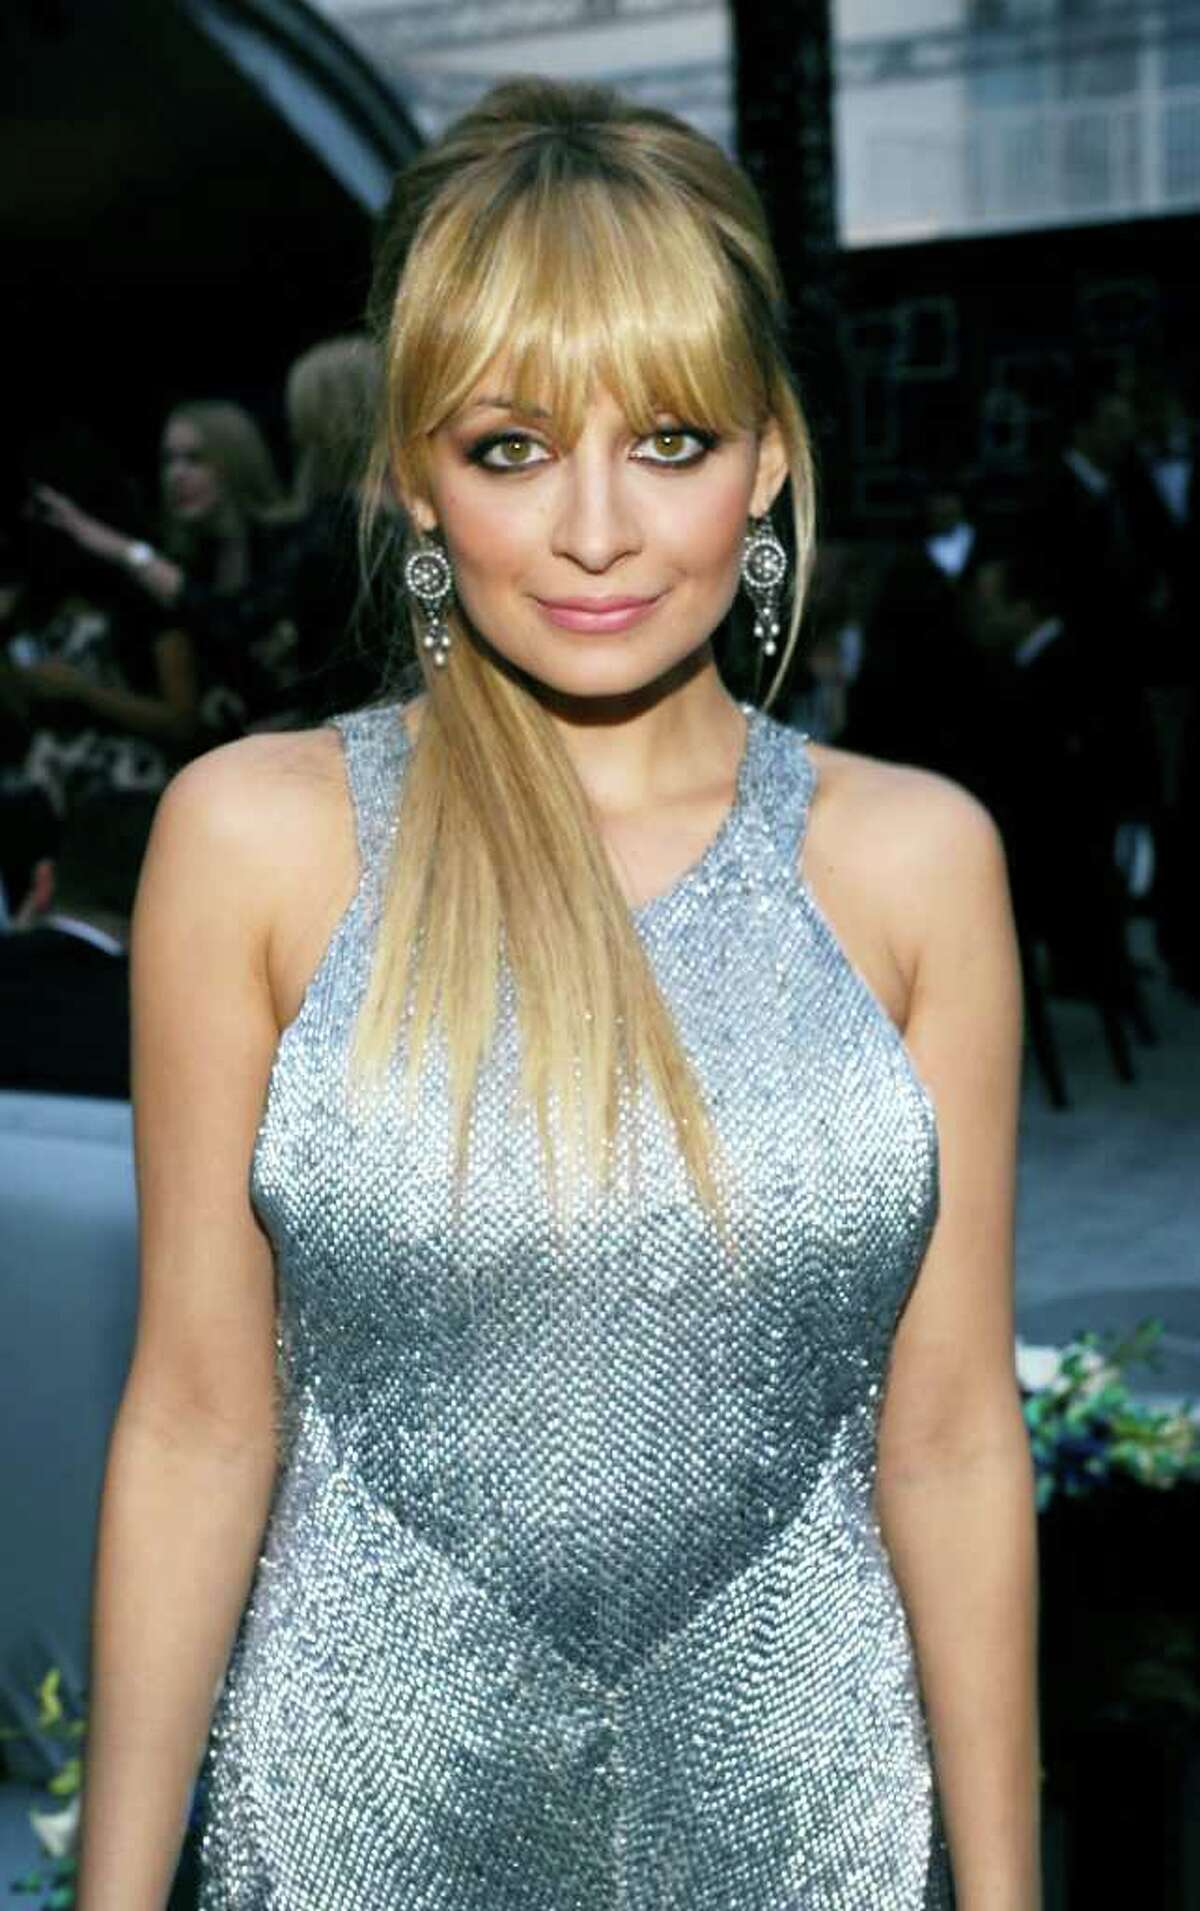 TV personality Nicole Richie attends NBC Universal's 69th Annual Golden Globes Viewing and After Party Sponsored By Chrysler and Hilton at The Beverly Hilton hotel on January 15, 2012 in Beverly Hills, California.